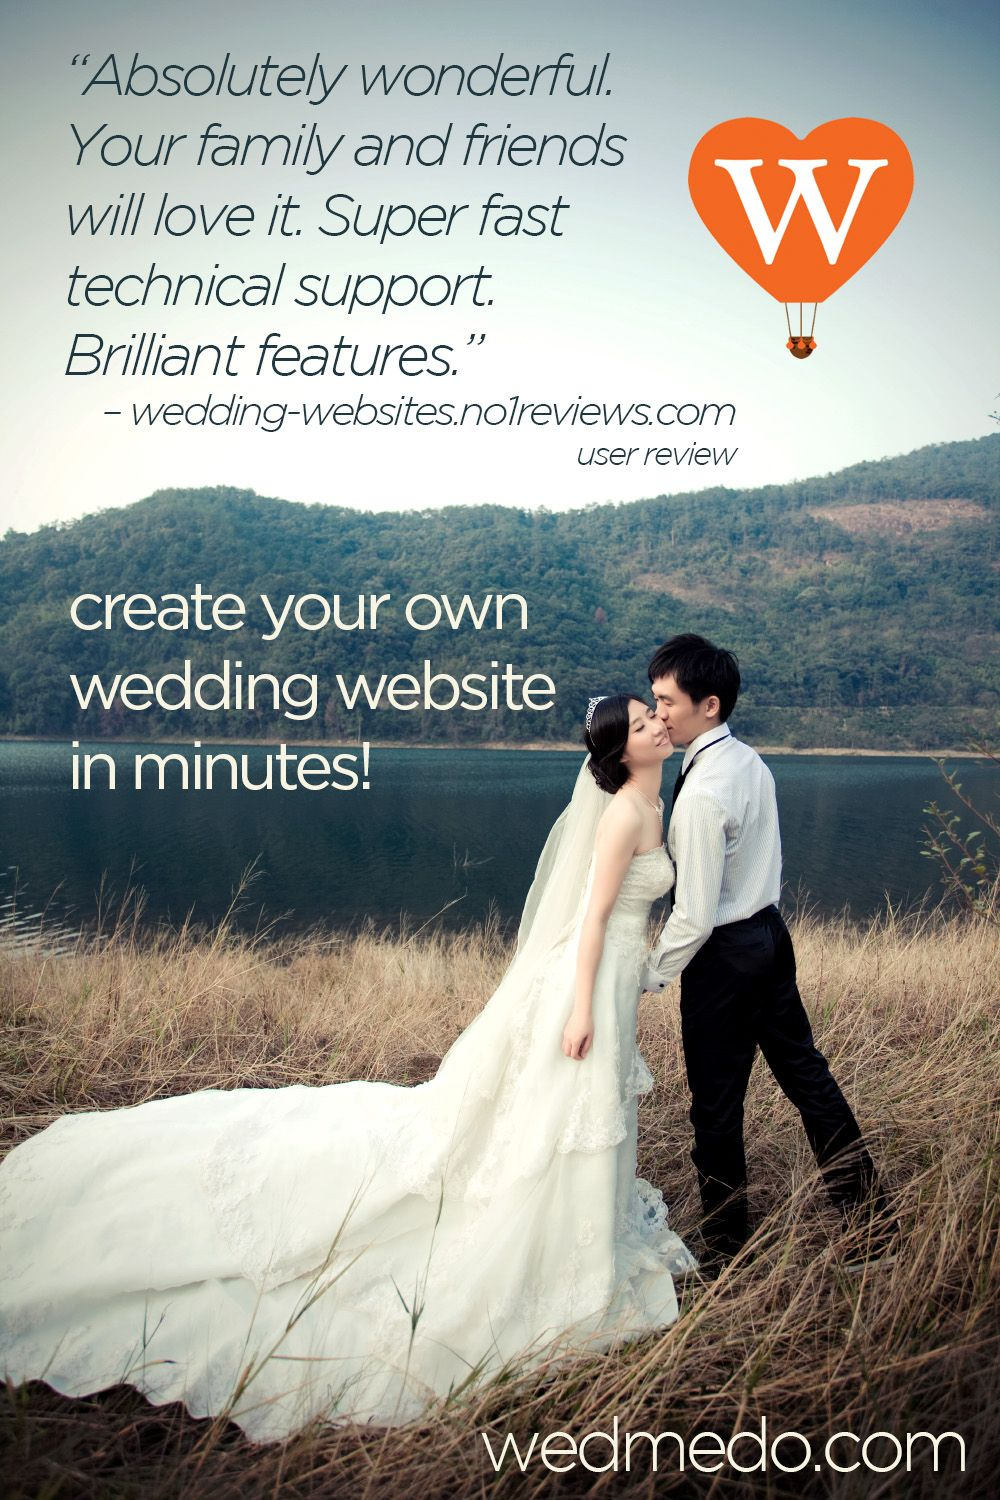 Design your wedding dress free  Create a Flash wedding website in under  minutes Itus fun itus